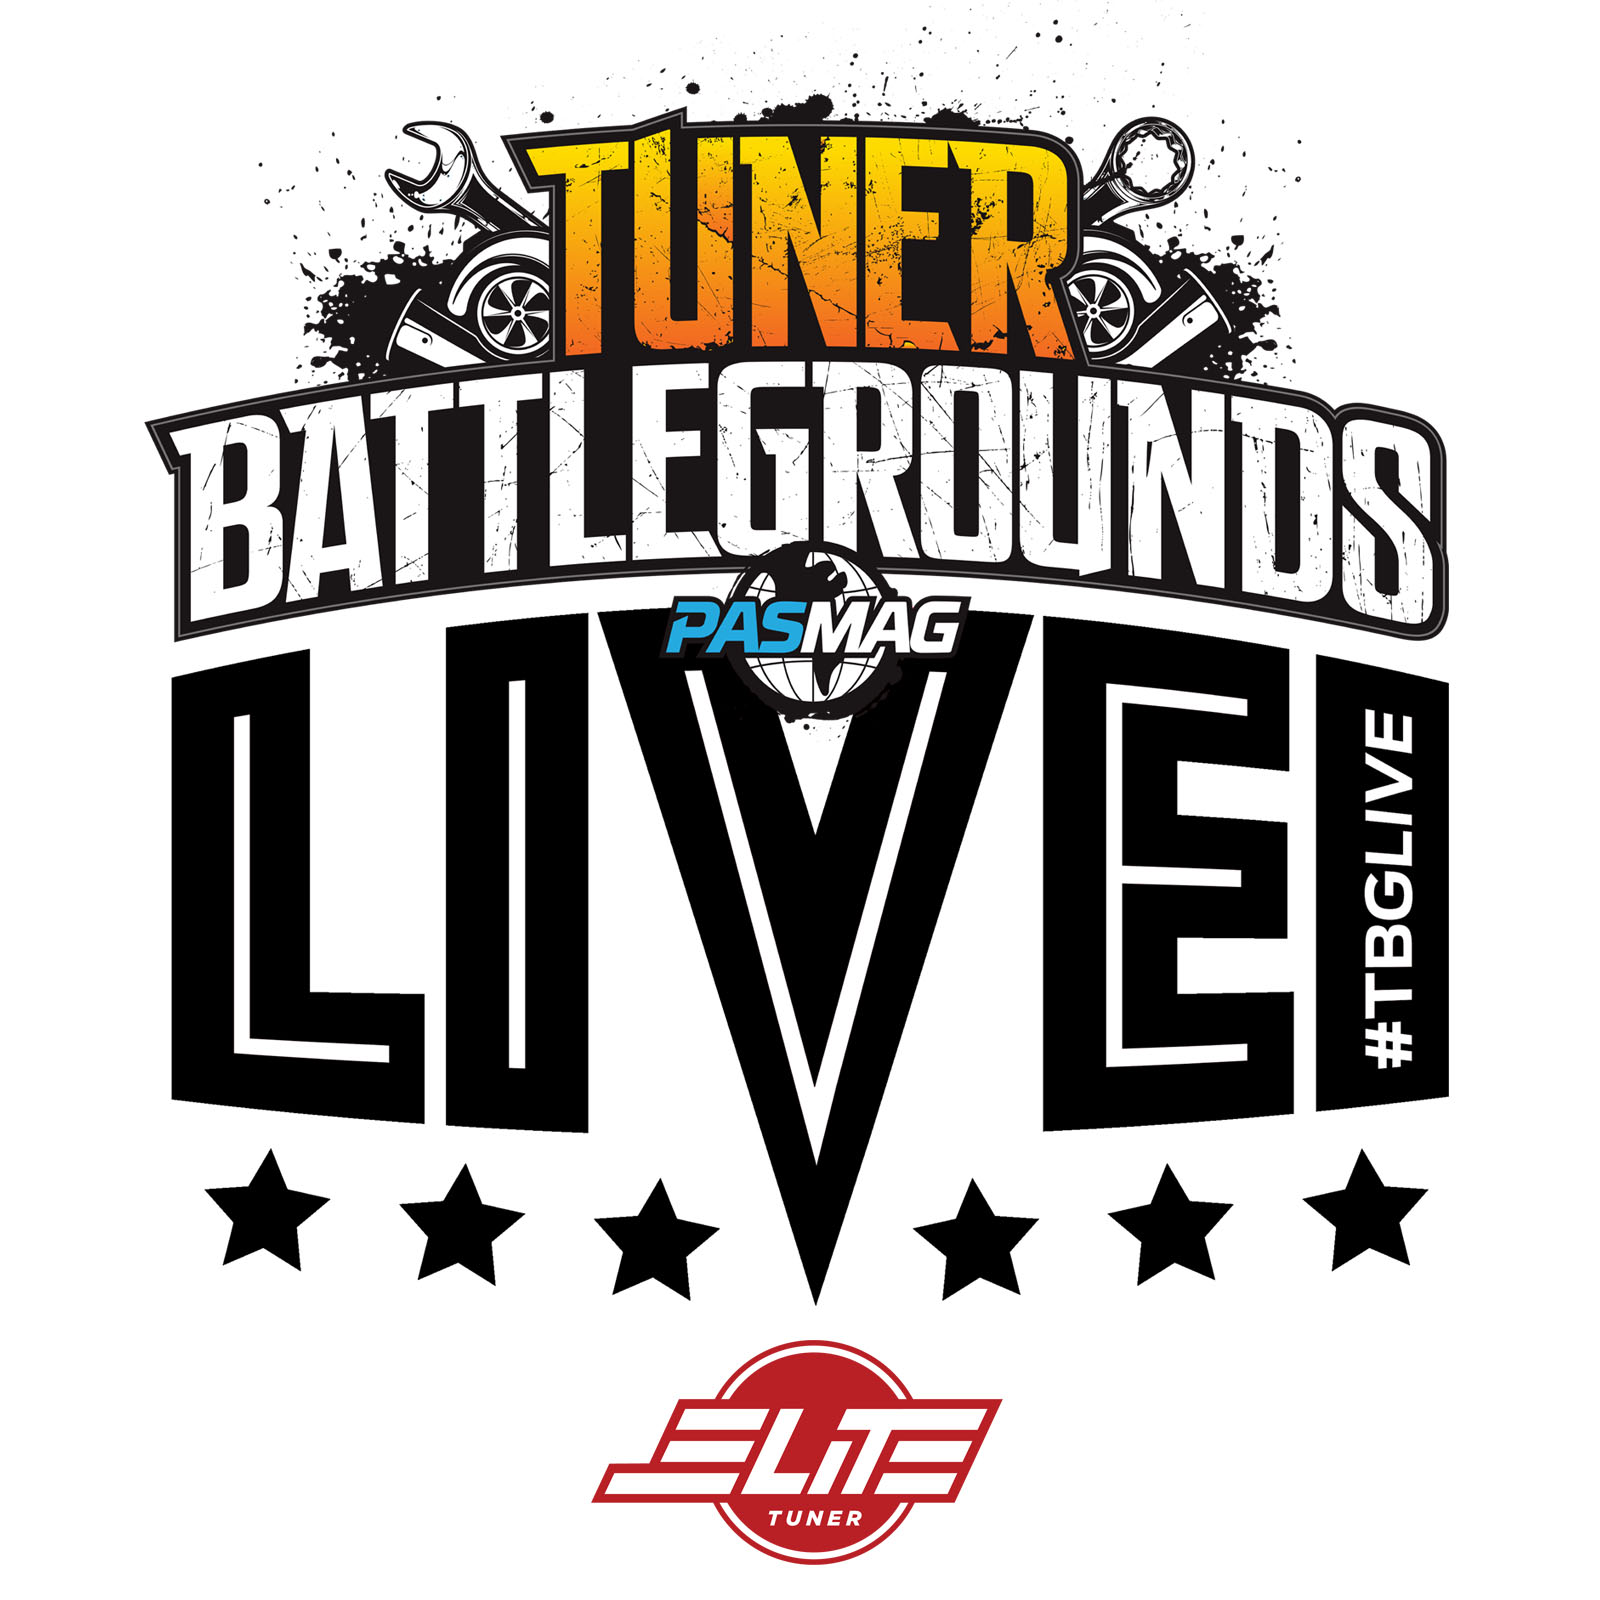 Tuner Battlegrounds TBGLIVE Elite Tuner 2017 logo